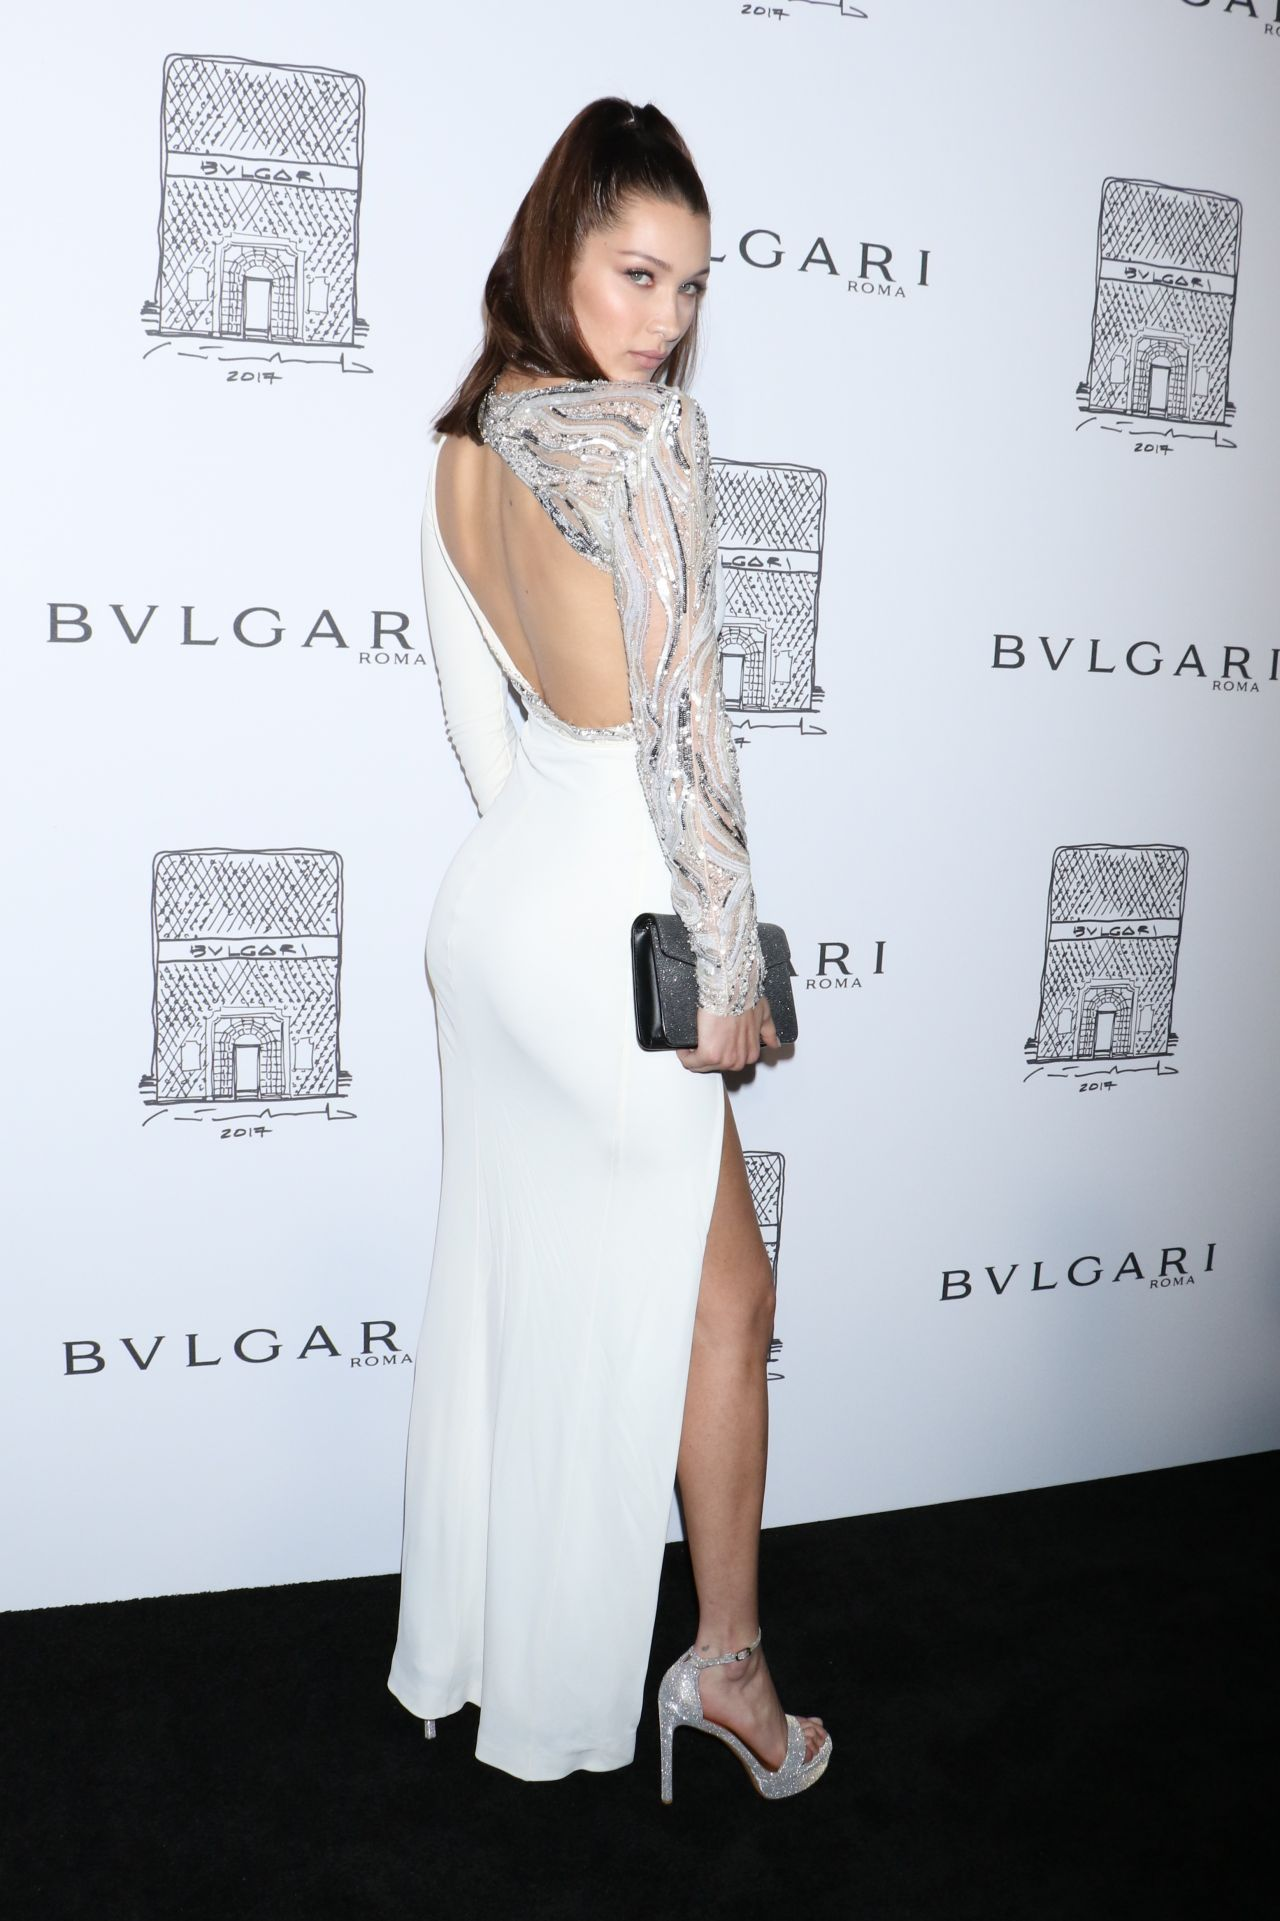 5be85072ec6 Bella Hadid attends Bulgari Celebrates 5th Avenue Flagship Store Opening on  Friday night (October 21) in New York City. She is wearing a Roberto  Cavalli ...